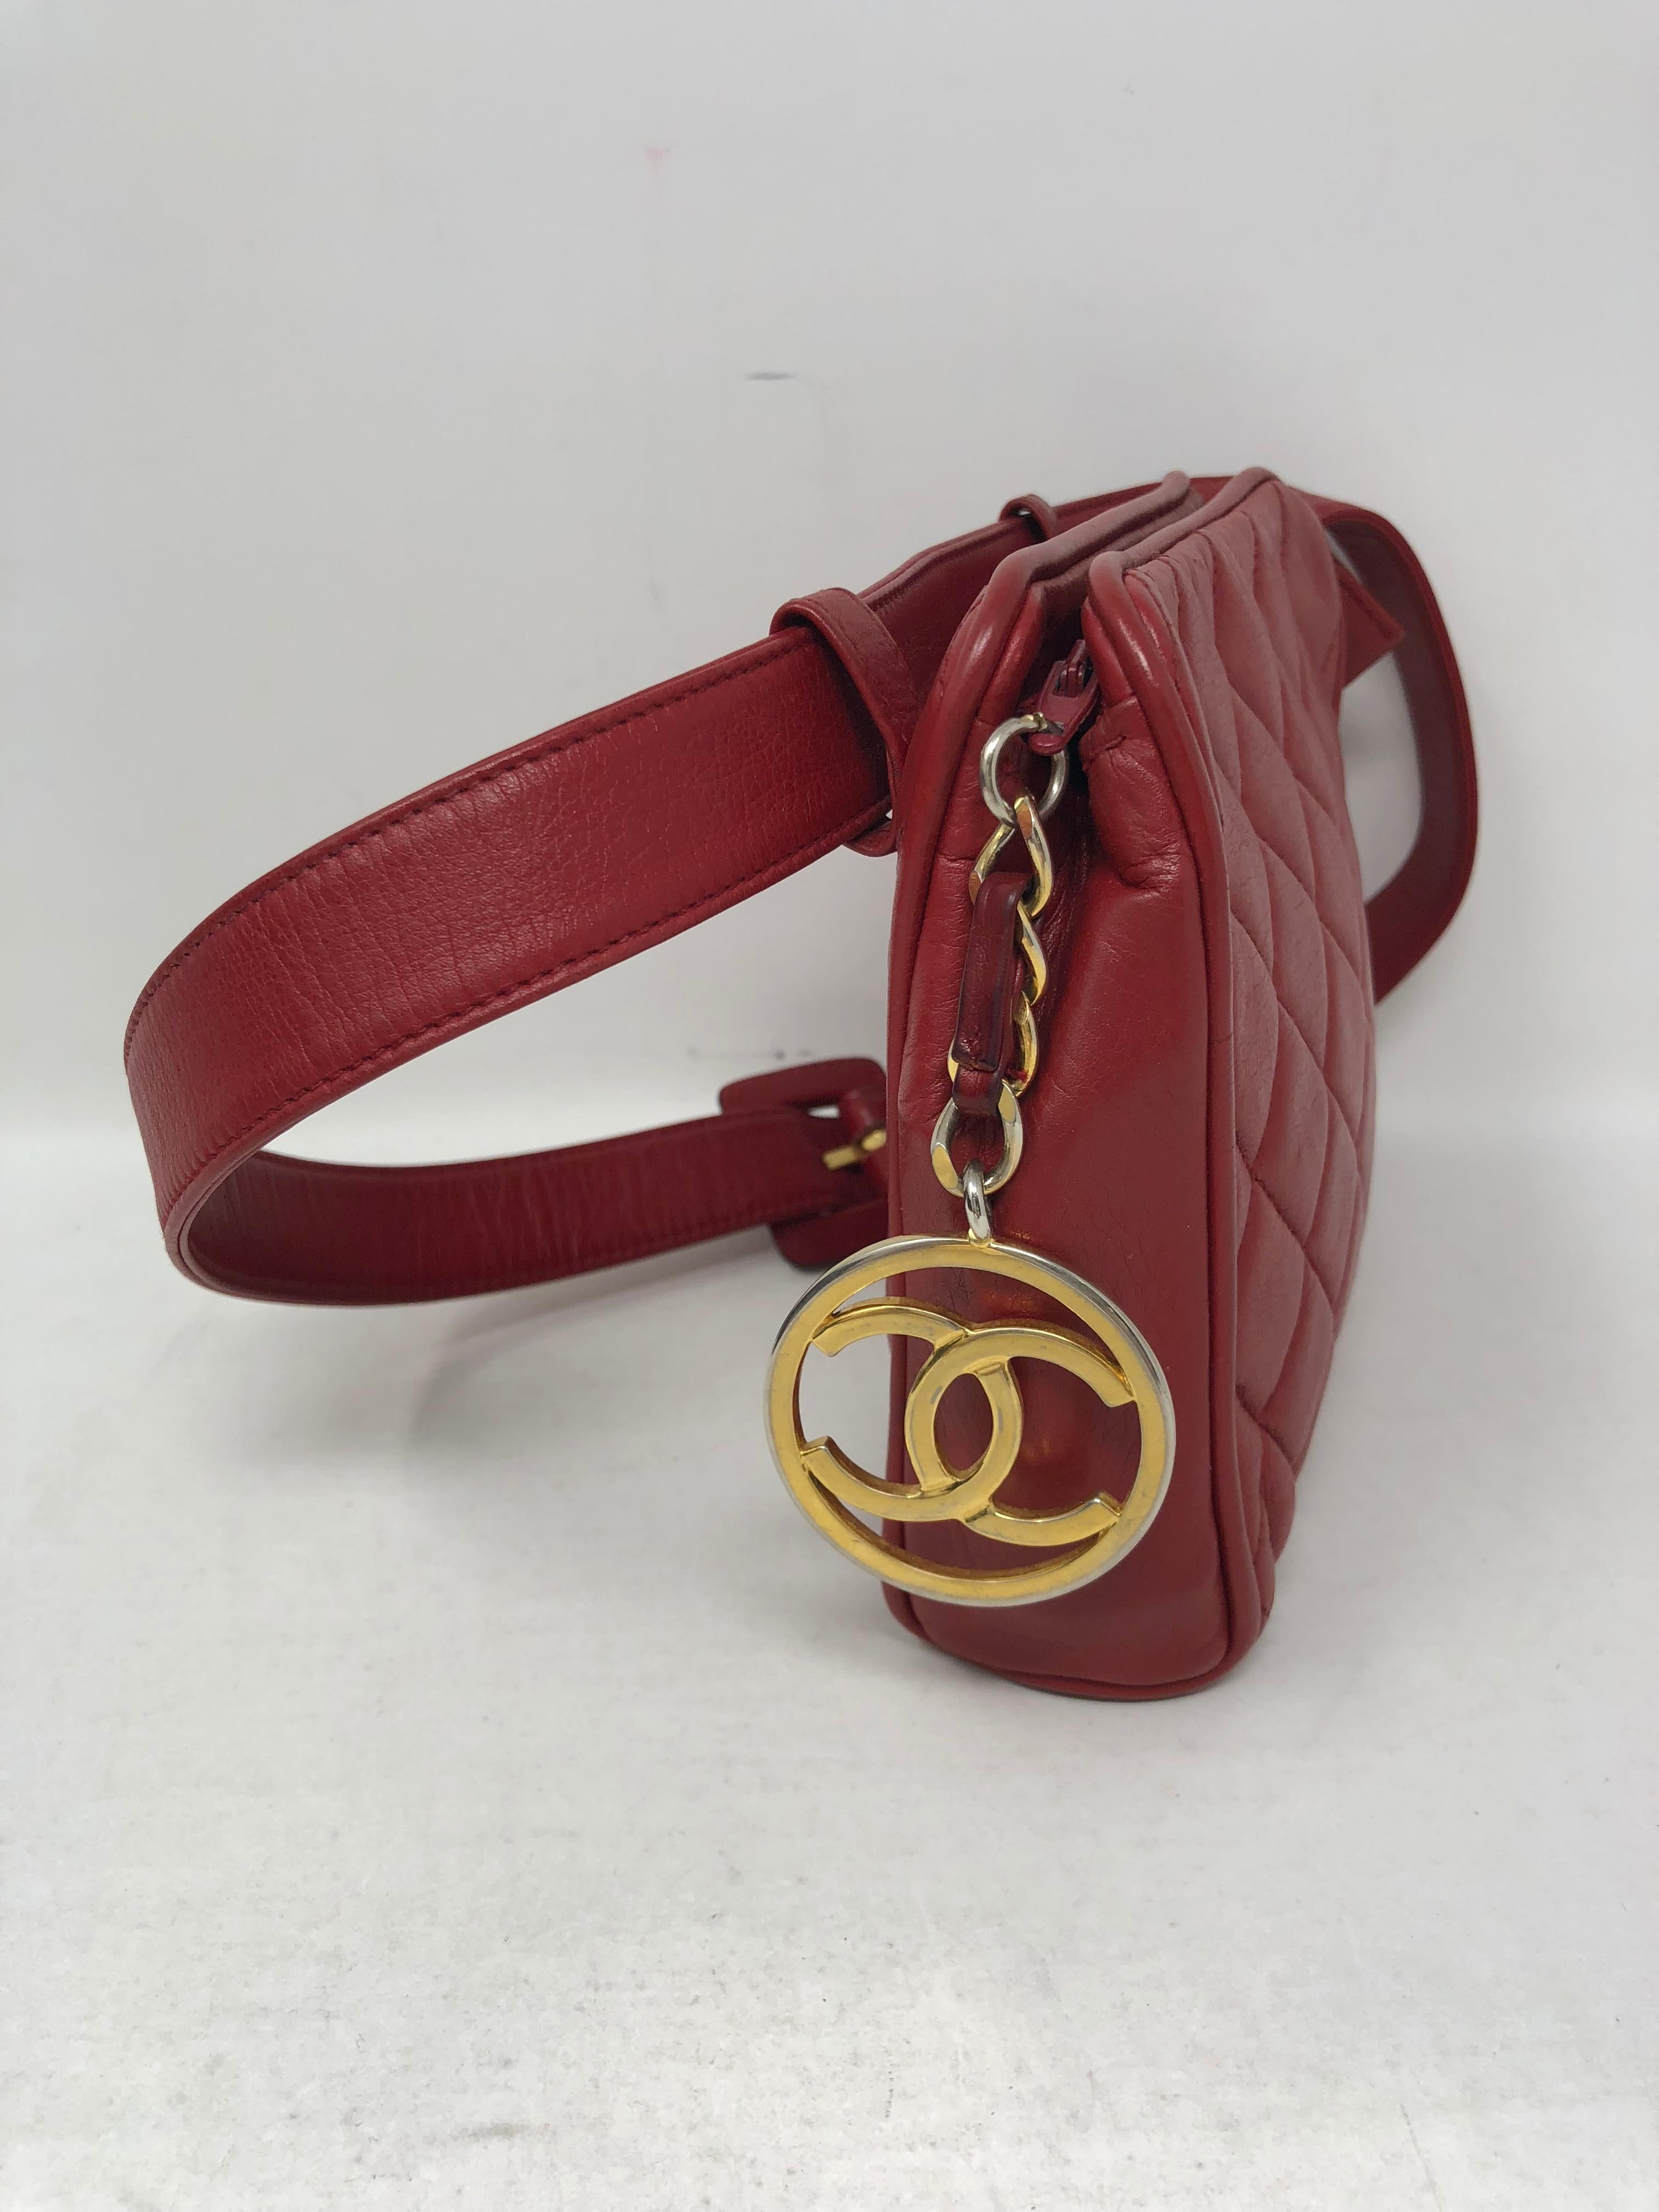 b4c3b1b55423 Red Chanel Fanny Pack/ Belt at 1stdibs